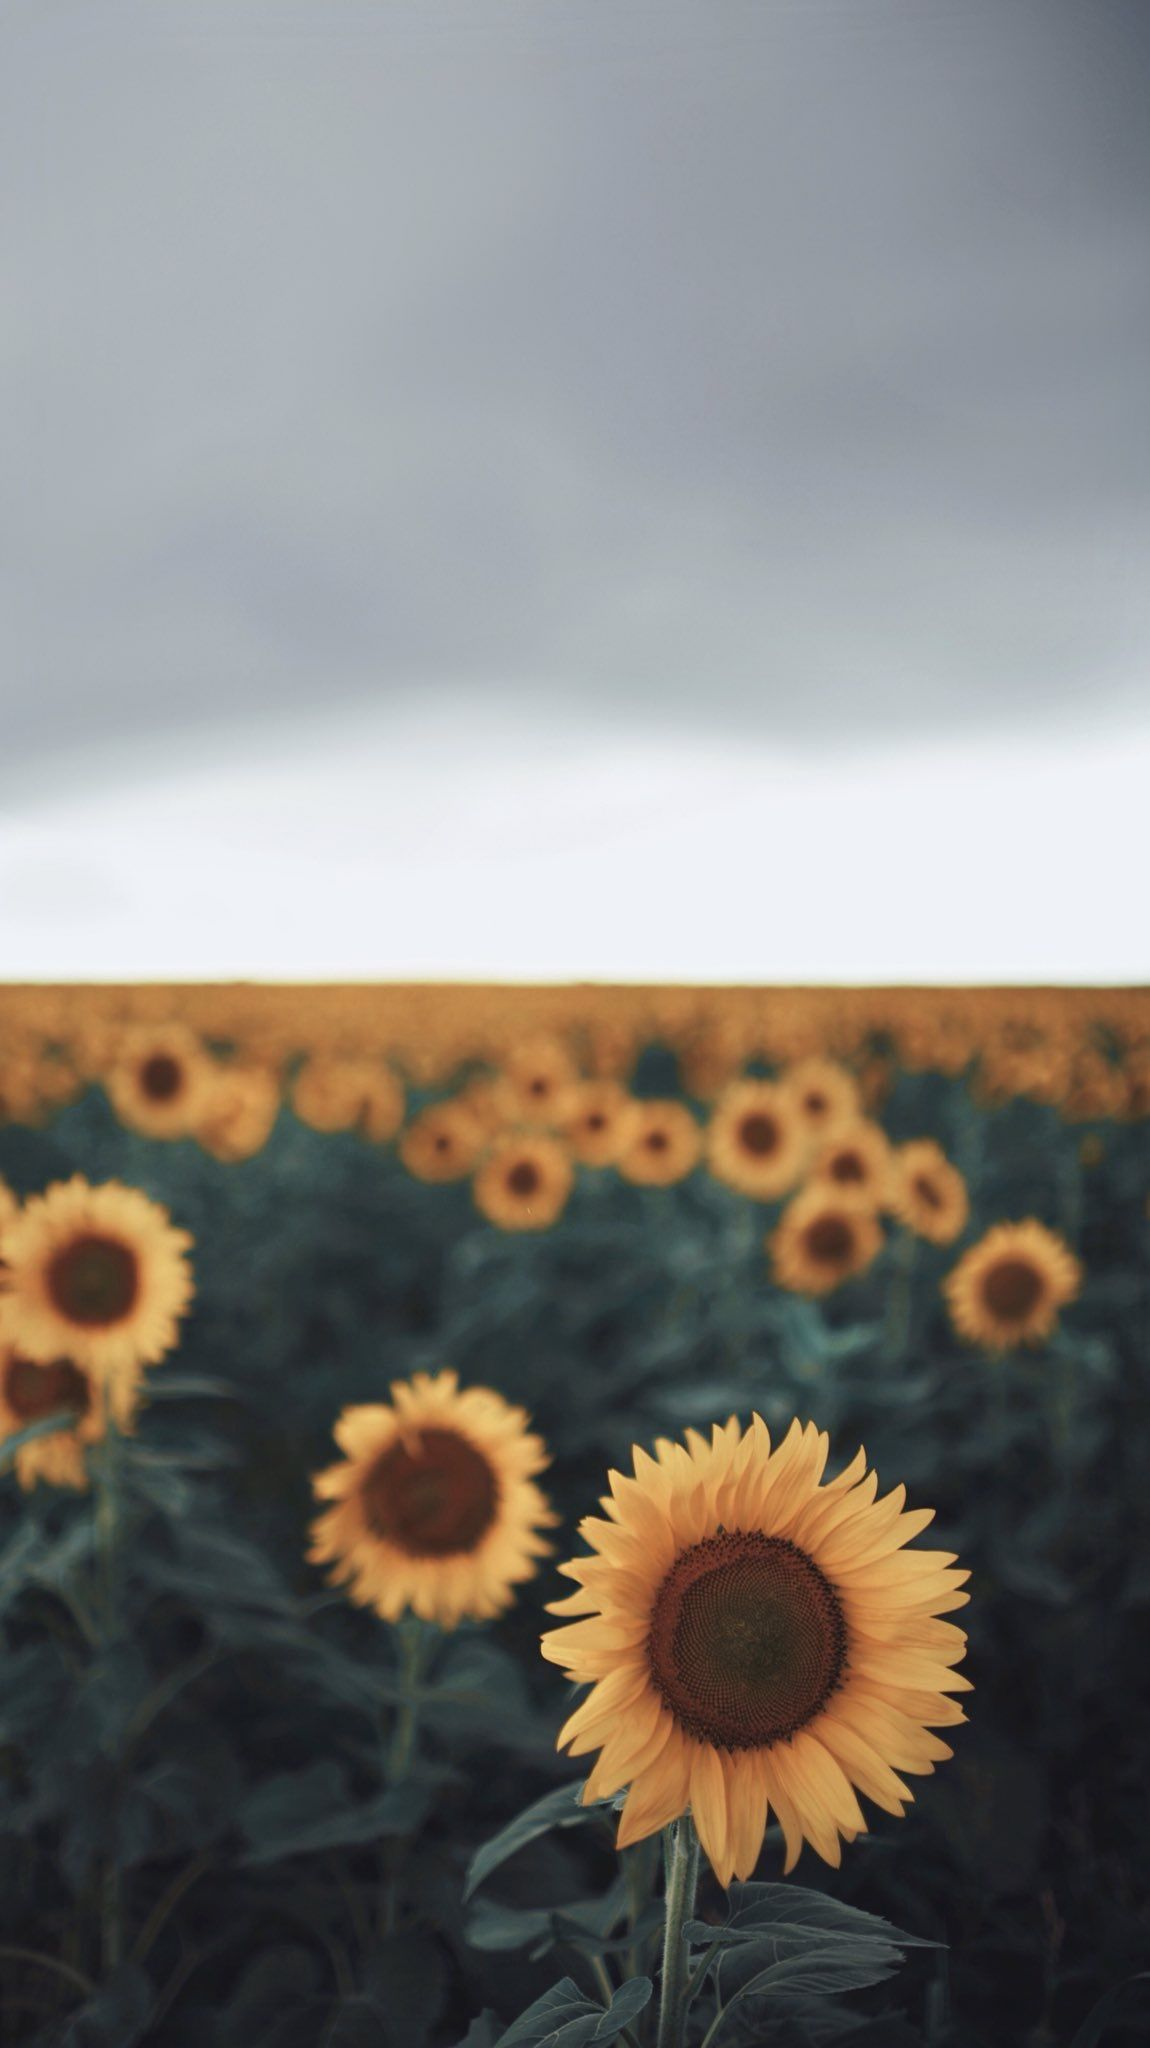 Pin By Claire Fellows On Wallpapers Sunflower Wallpaper Sunflowers Background Tumblr Backgrounds